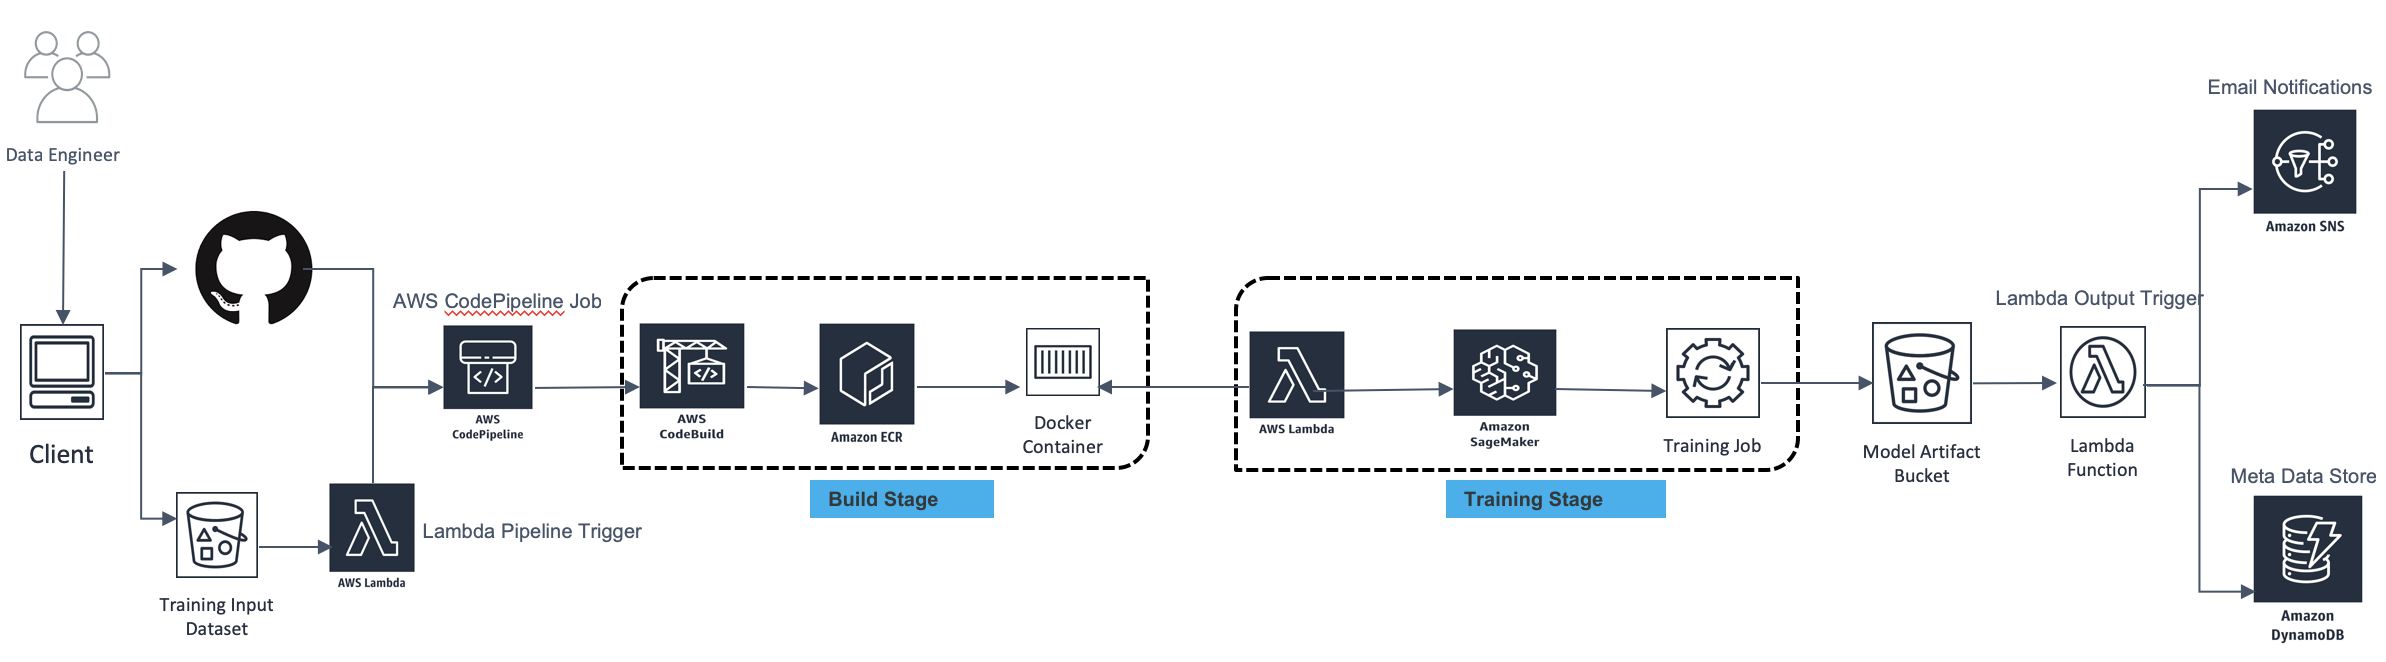 Sagemaker How To Build Your Machine Learning Pipeline